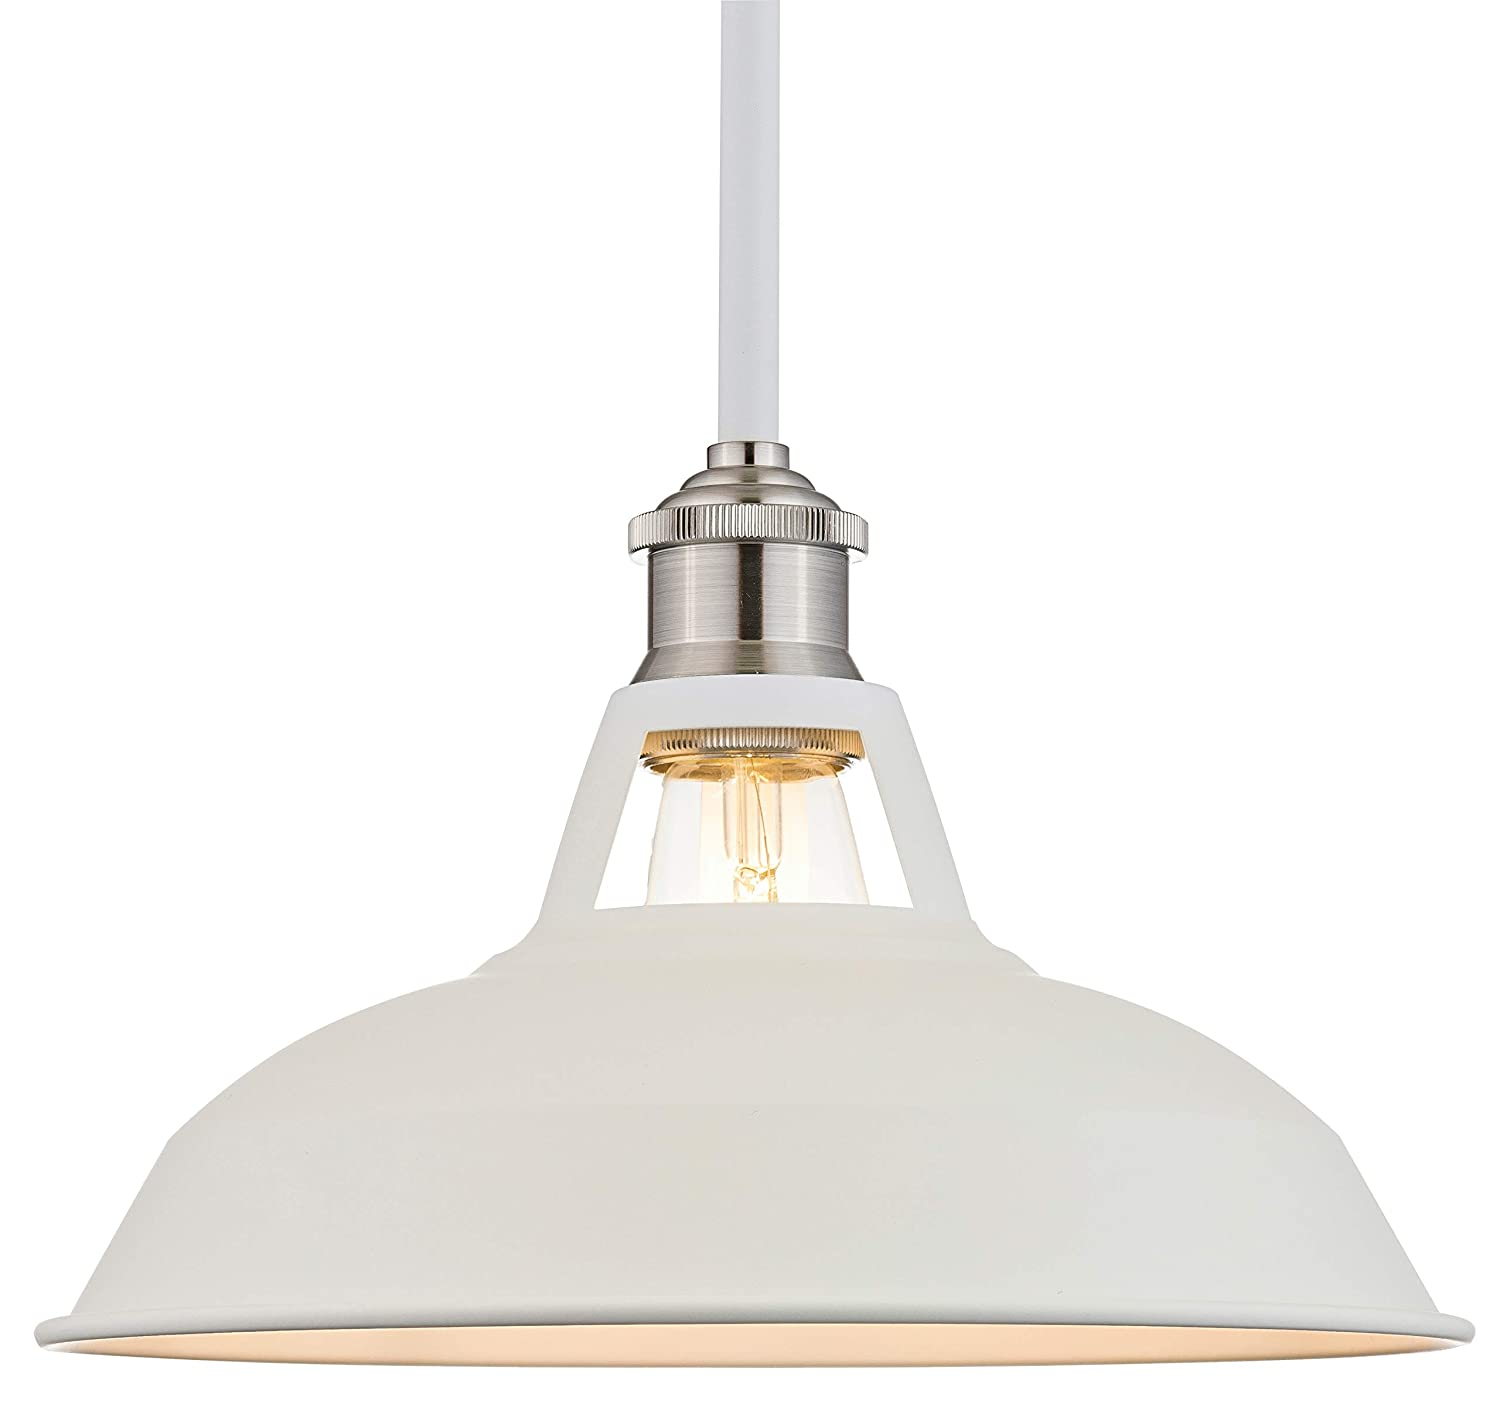 Olivera 10.5 inch Pendant Light White Pendant Lighting for Kitchen Island with LED Bulb LL-P833-10WH